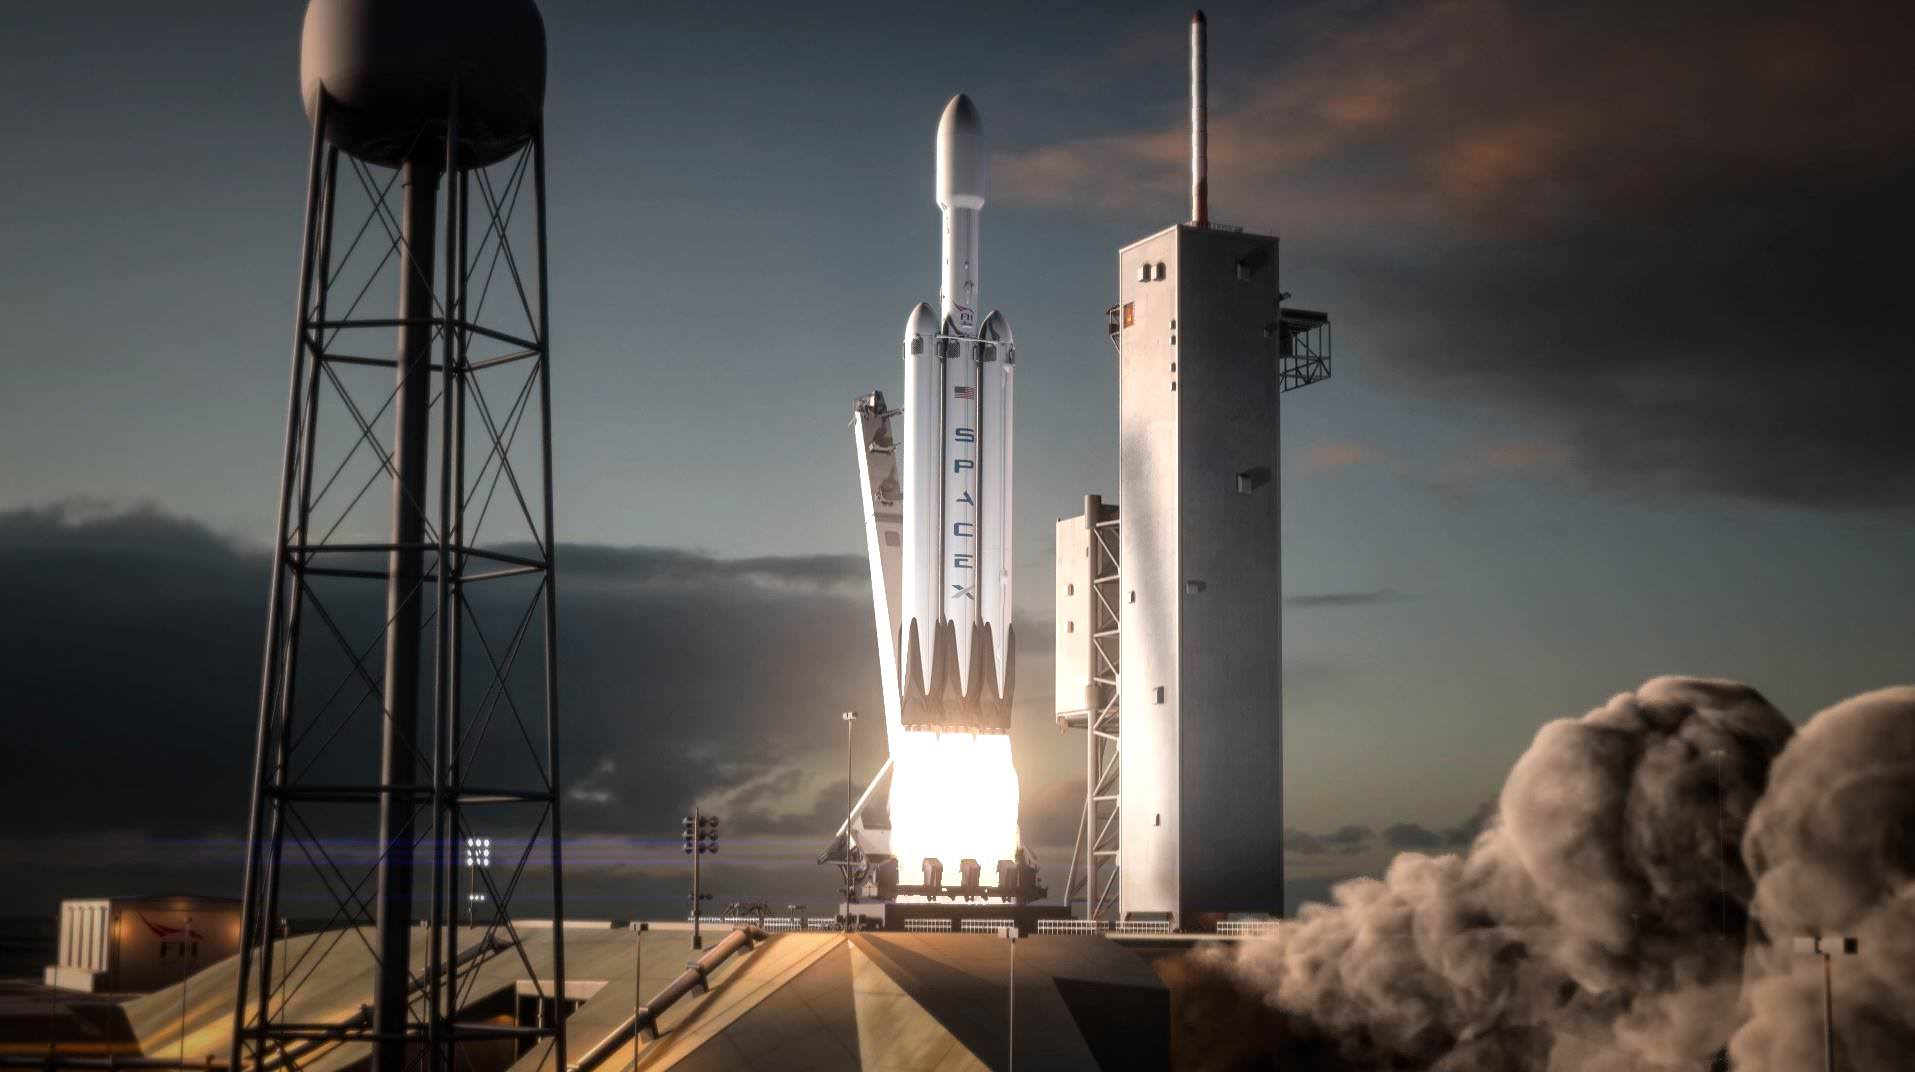 SpaceX Falcon Heavy rocket poised for launch from the Kennedy Space Center in Florida in this updated artists concept. Credit: SpaceX